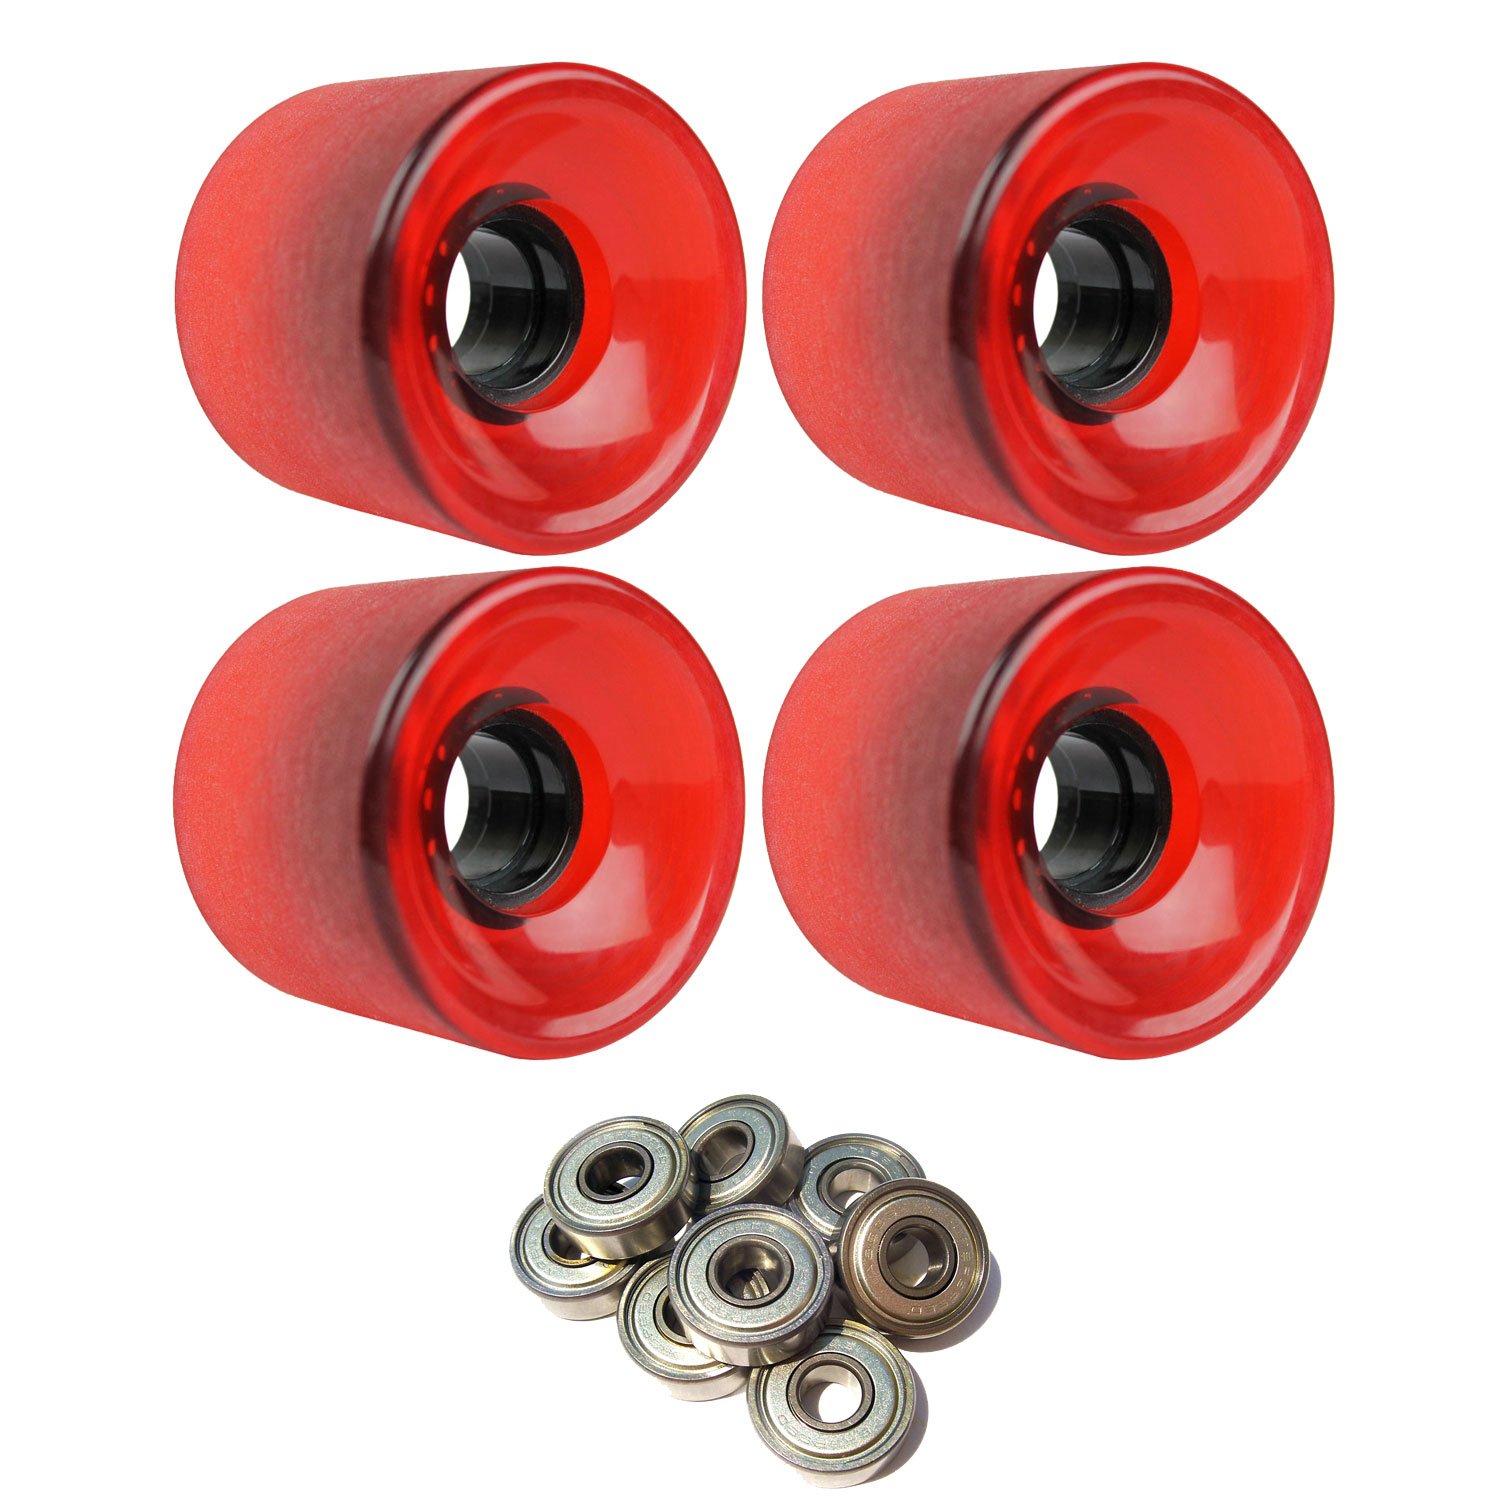 LONGBOARD CRUISER WHEELS 62mm x 51.5mm 83A 485C Red ABEC 7 BEARINGS